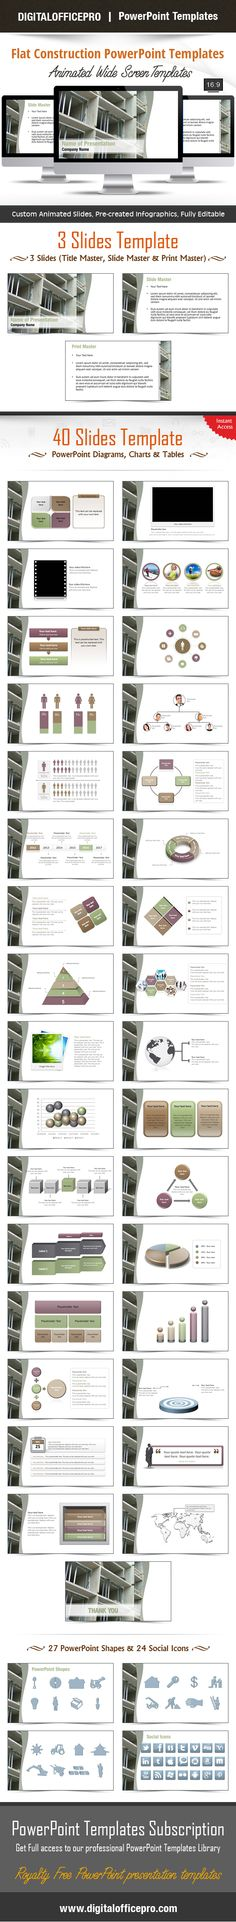 Impress and Engage your audience with Flat Construction PowerPoint Template and Flat Construction PowerPoint Backgrounds from DigitalOfficePro. Each template comes with a set of PowerPoint Diagrams, Charts & Shapes and are available for instant download.